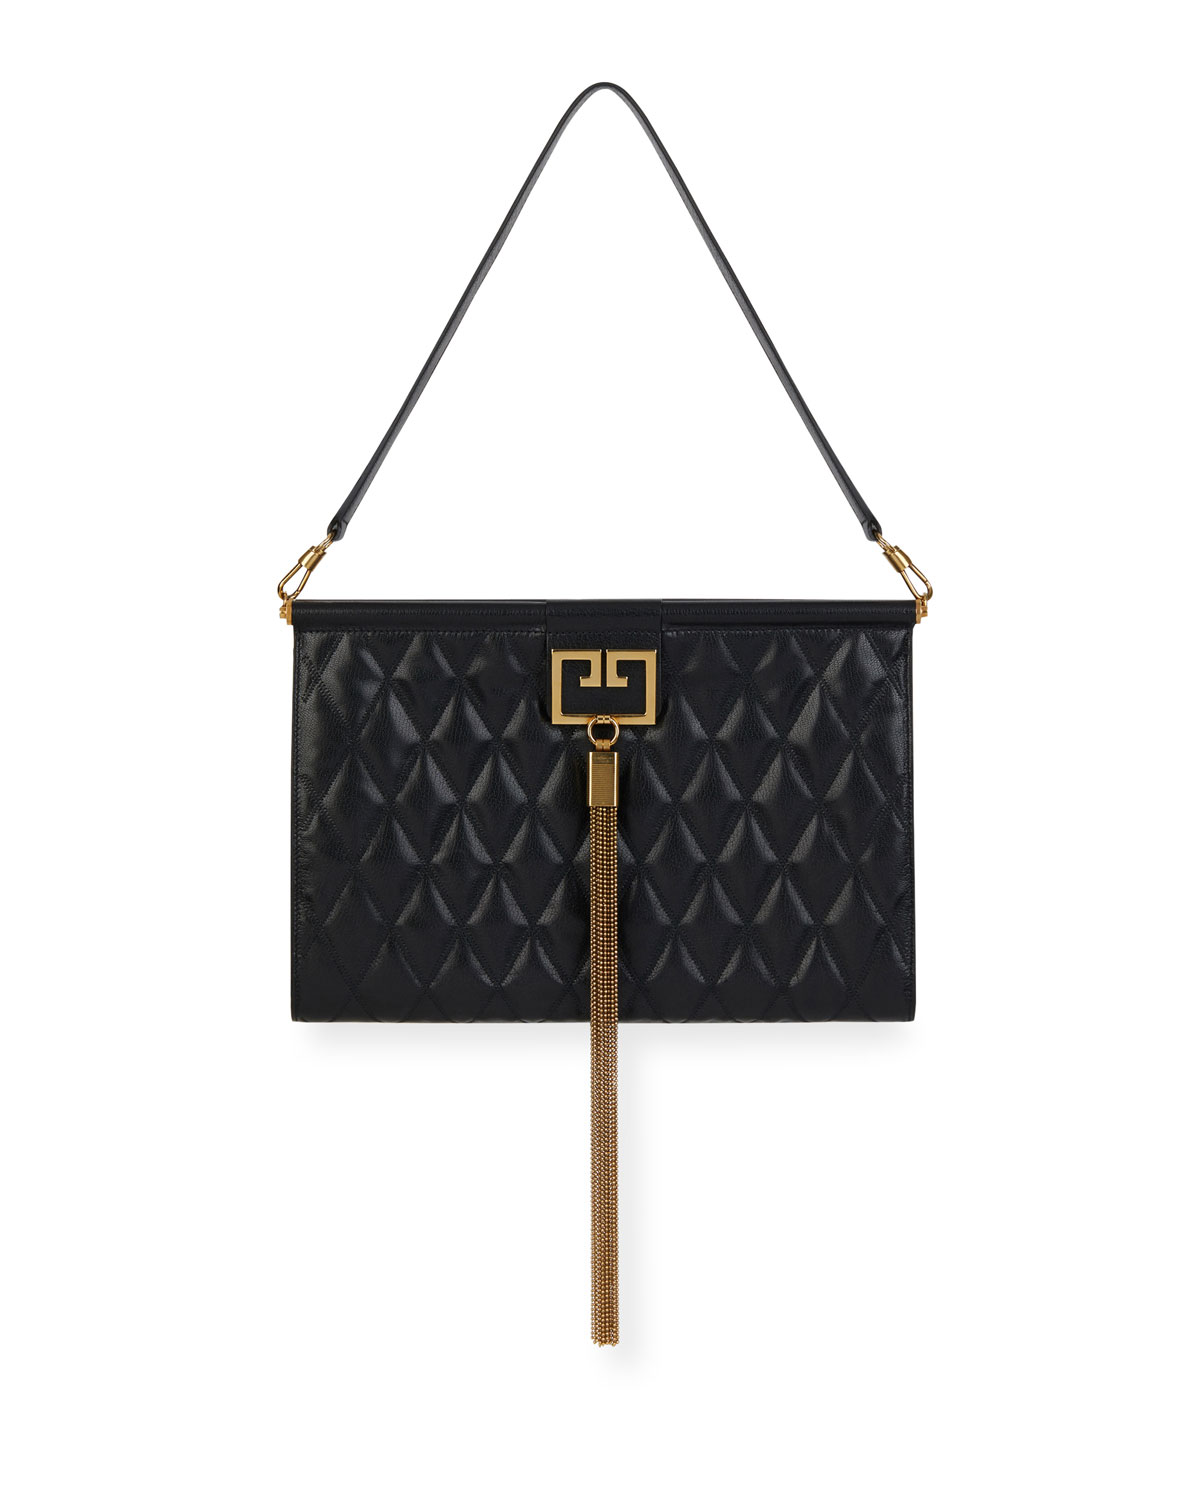 Givenchy Gem Large Quilted Leather Shoulder Bag   Neiman Marcus 842f057e7b